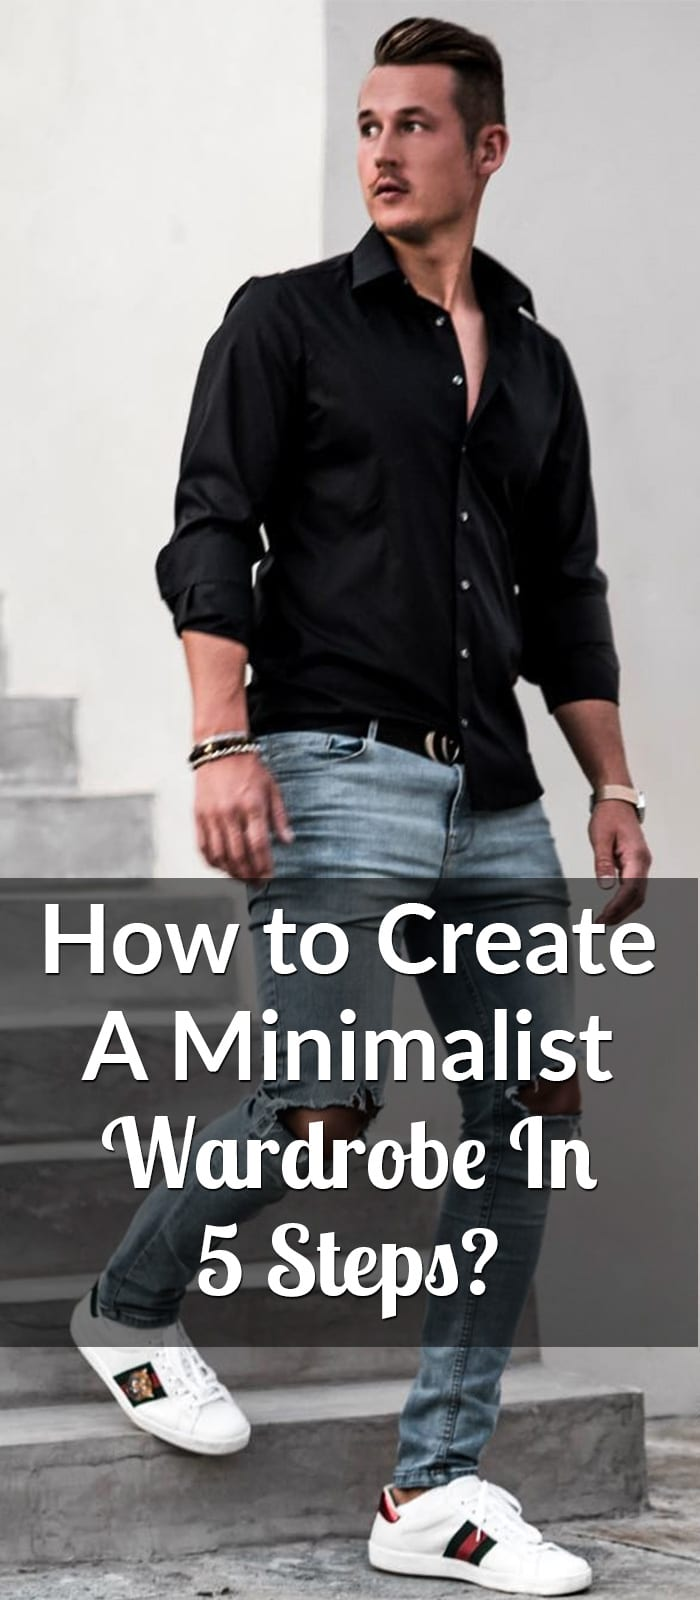 How to Create a Minimalist Wardrobe In 5 Steps